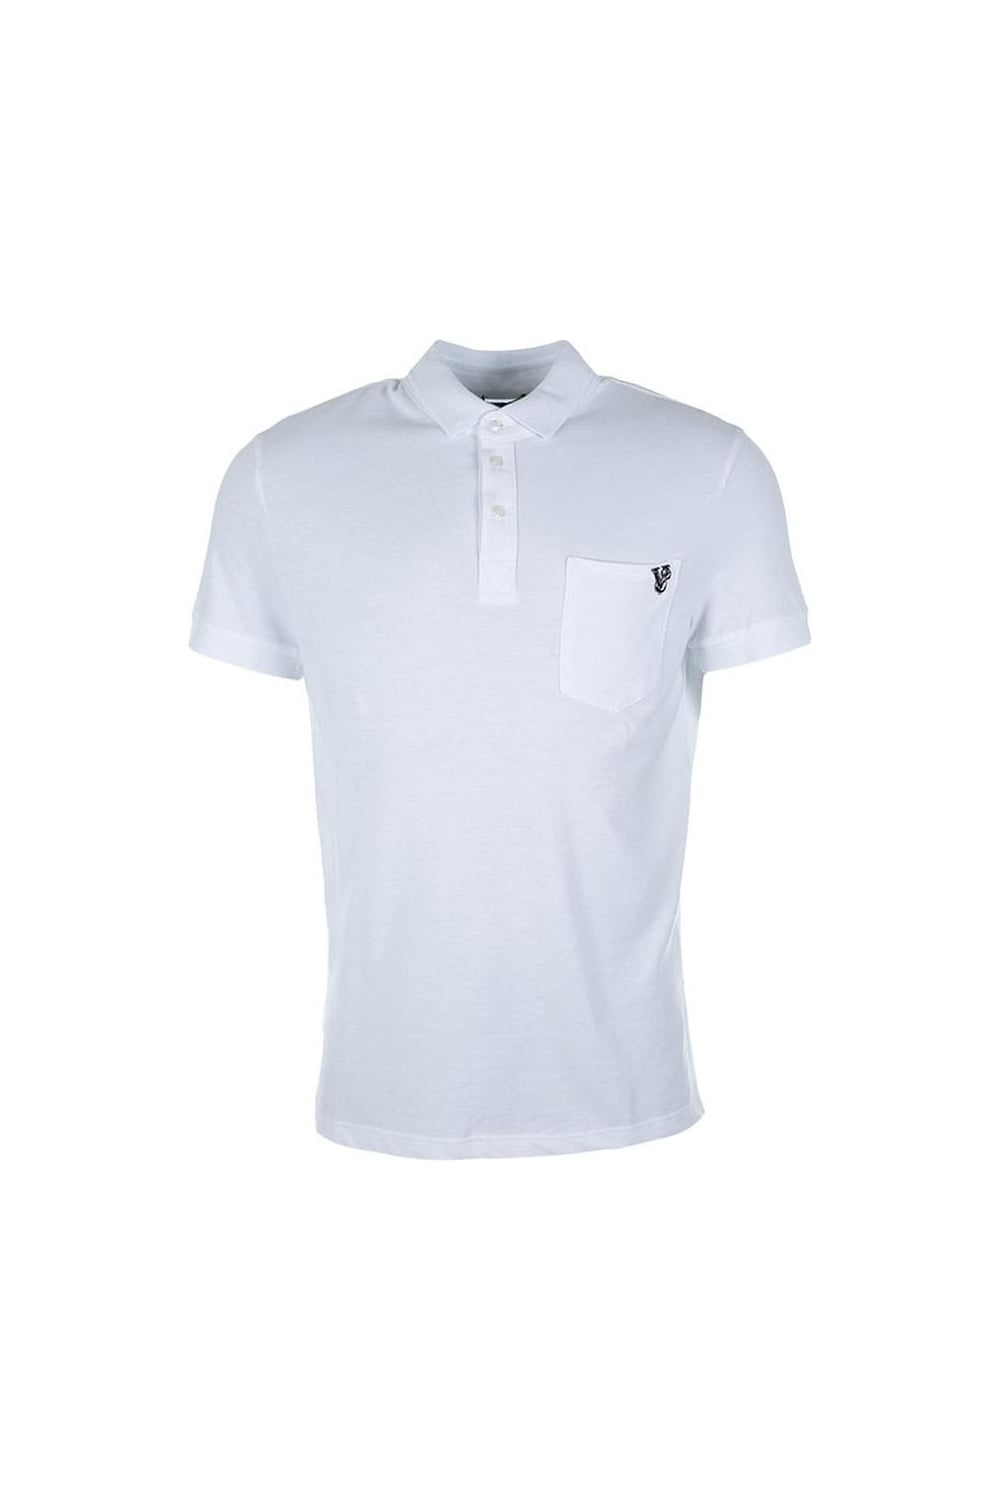 23d926c60 Versace Jeans | Metal Badge Polo T-Shirt White | Intro Clothing